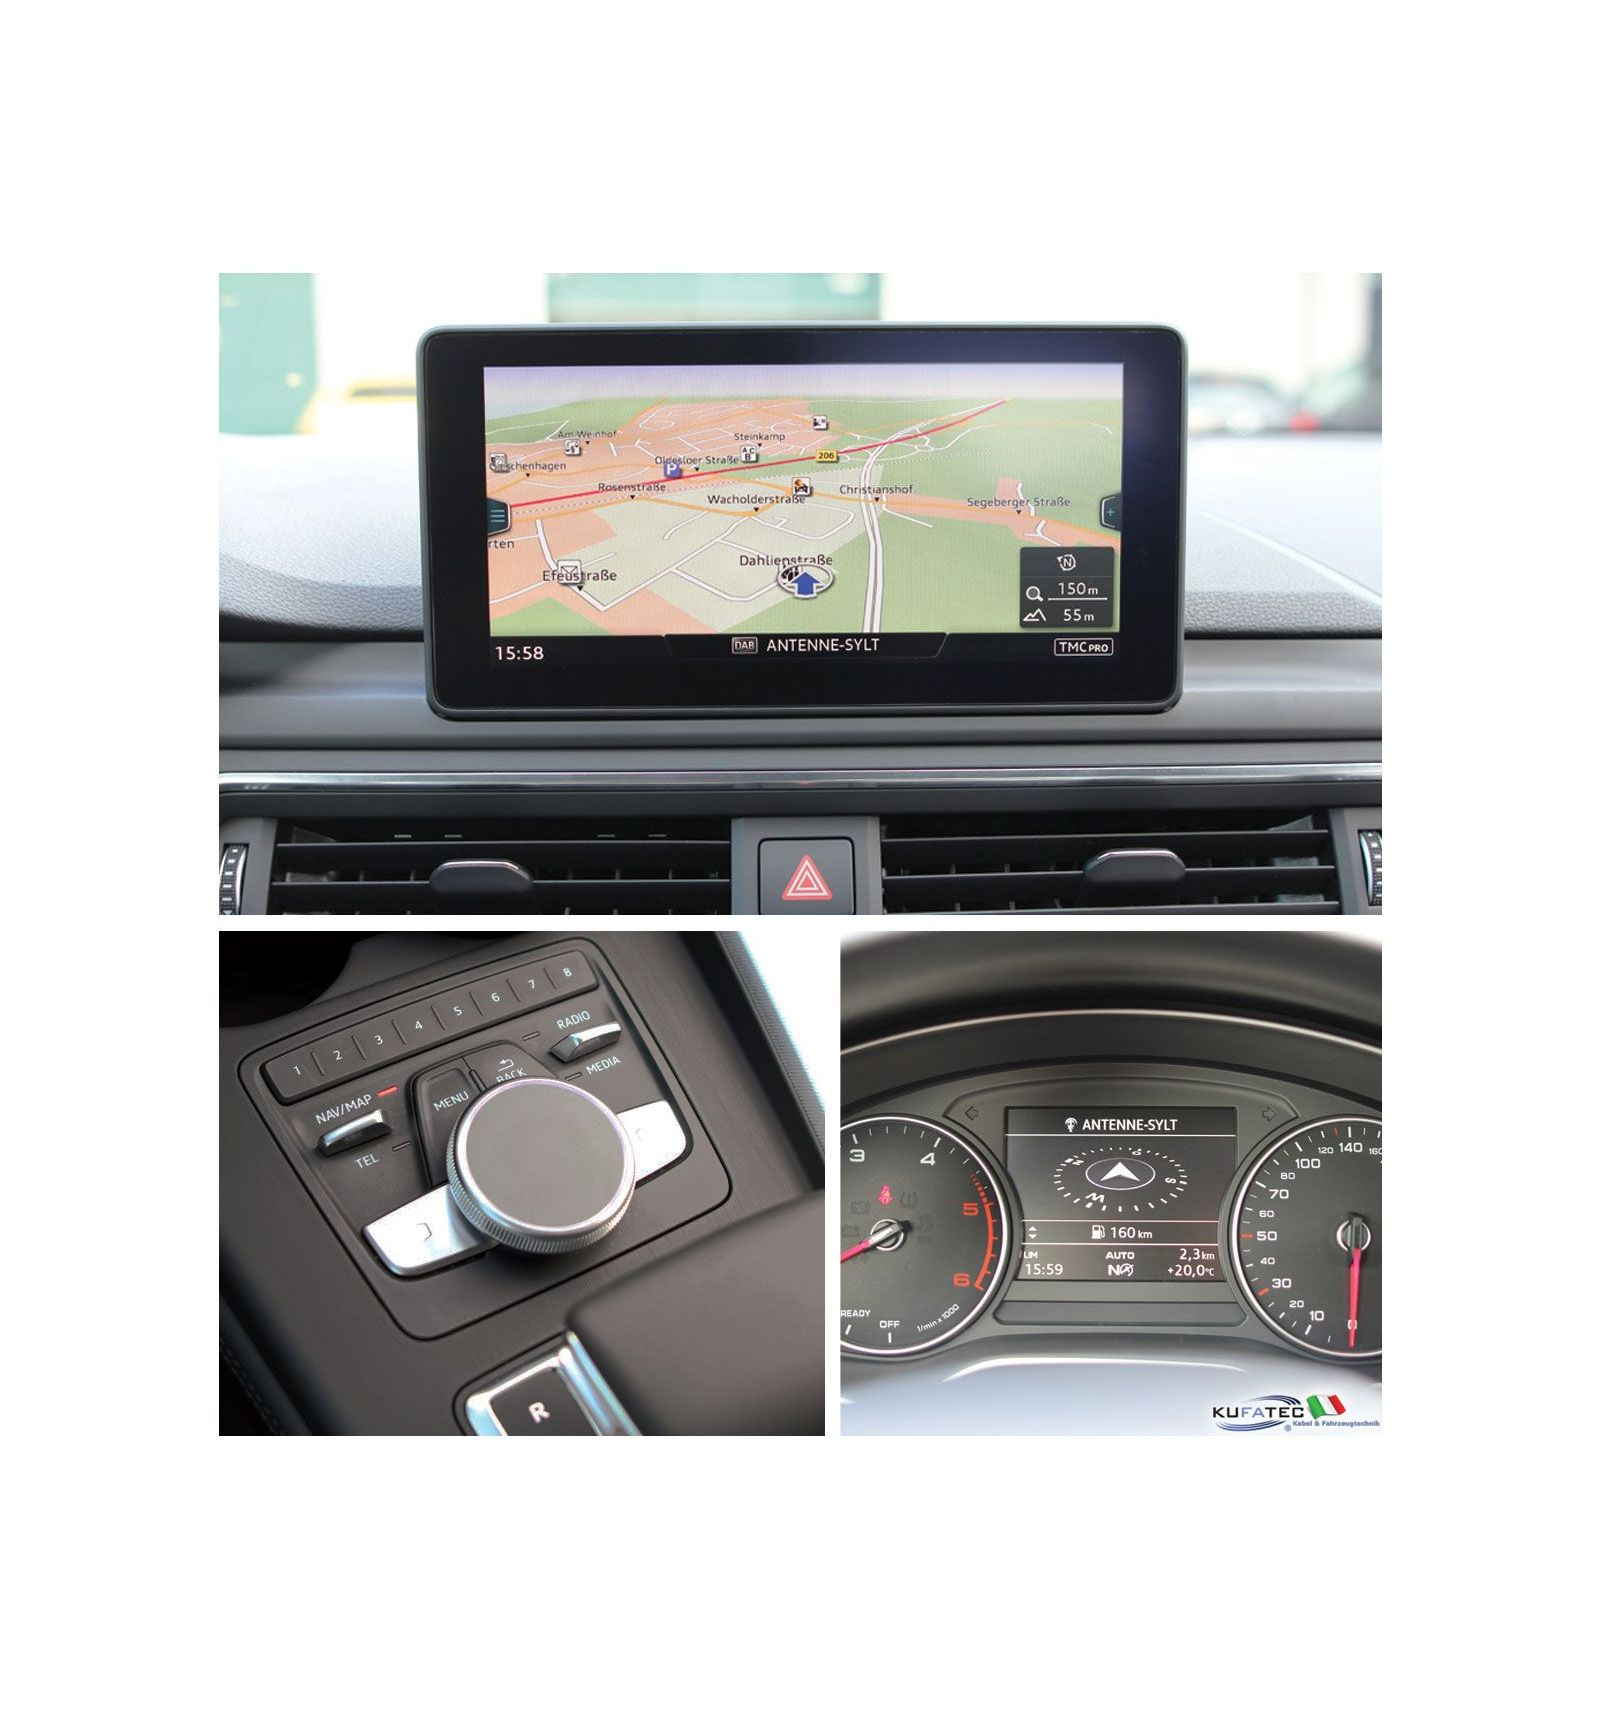 retrofit kit mmi navigation plus with mmi touch audi a5 f5. Black Bedroom Furniture Sets. Home Design Ideas